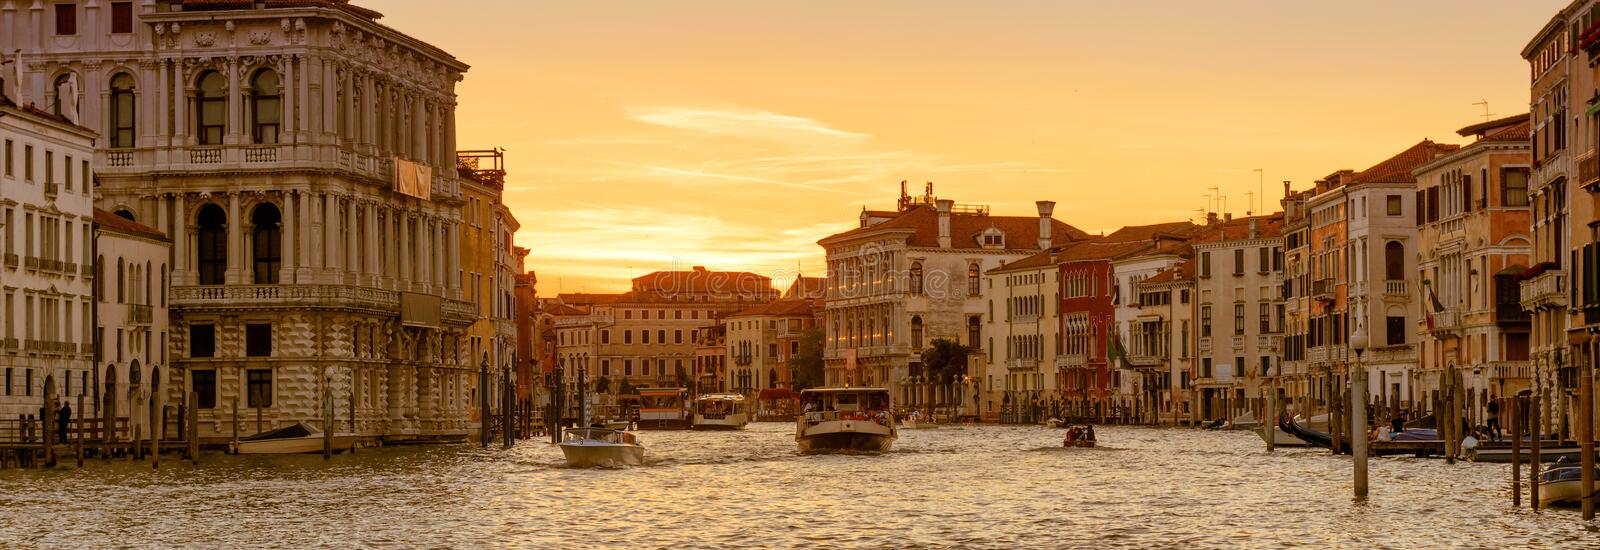 Panoramic view of Venice at sunset, Italy. Horizontal banner of Venice for website header. Motor boats with tourists sail along the Grand Canal in Venice royalty free stock images